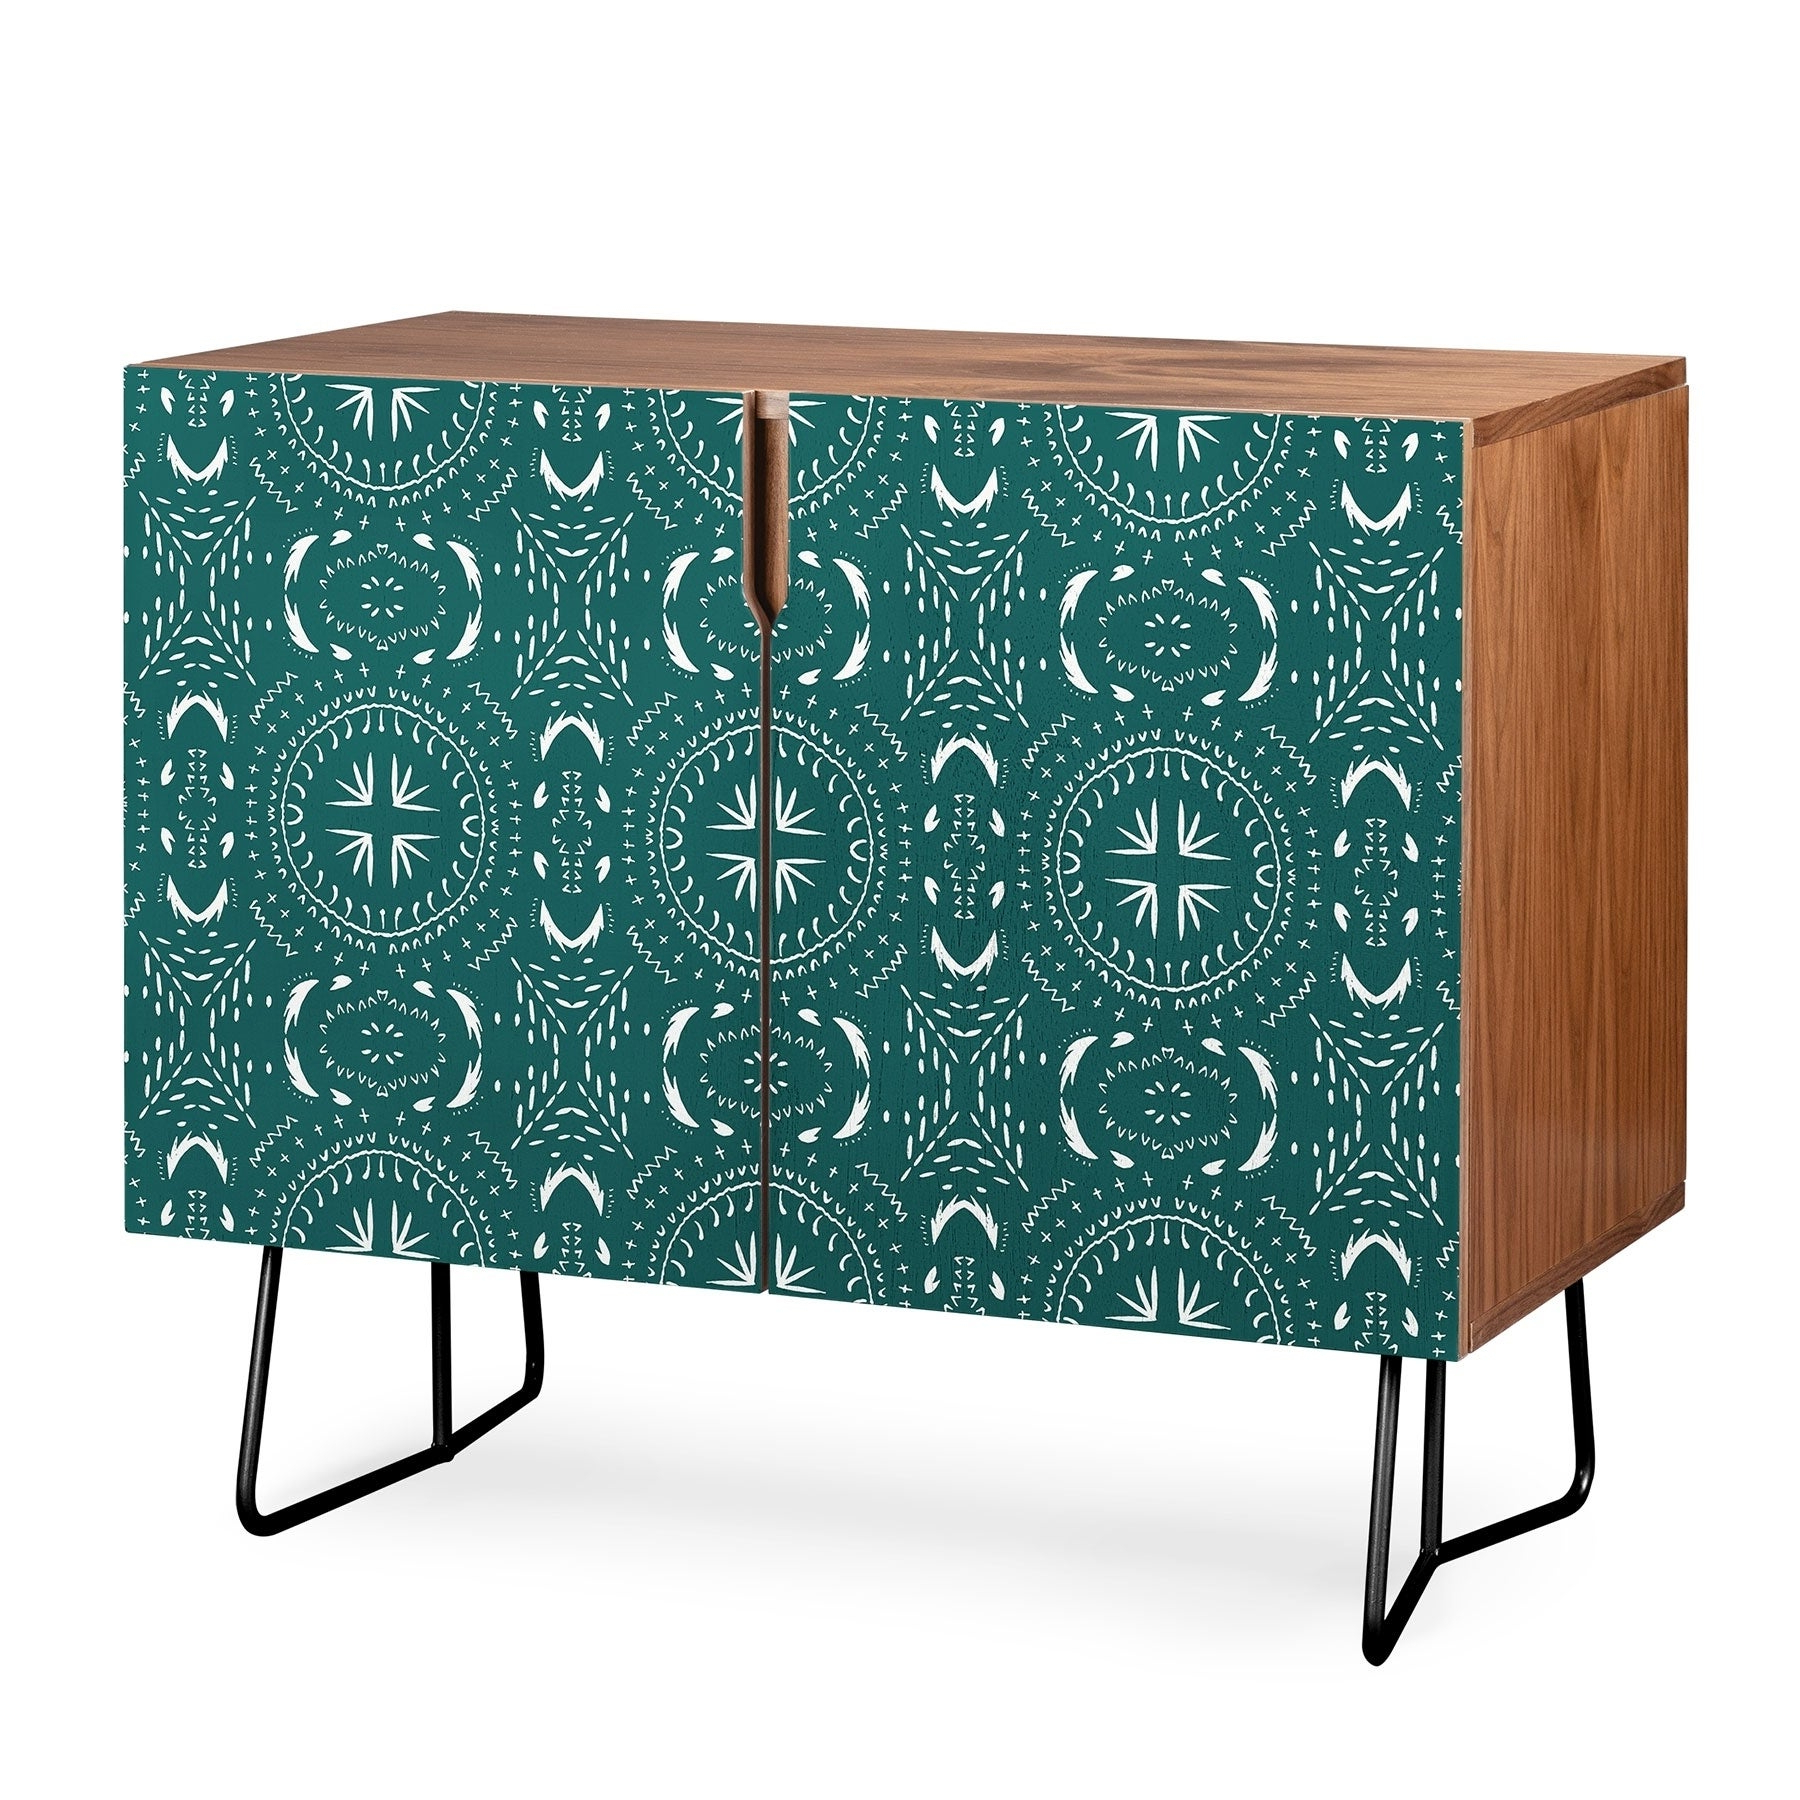 Deny Designs Mandala Tile Marine Credenza (Birch Or Walnut, 2 Leg Options) Intended For Carson Carrington Bogard Crane Credenzas (View 17 of 20)